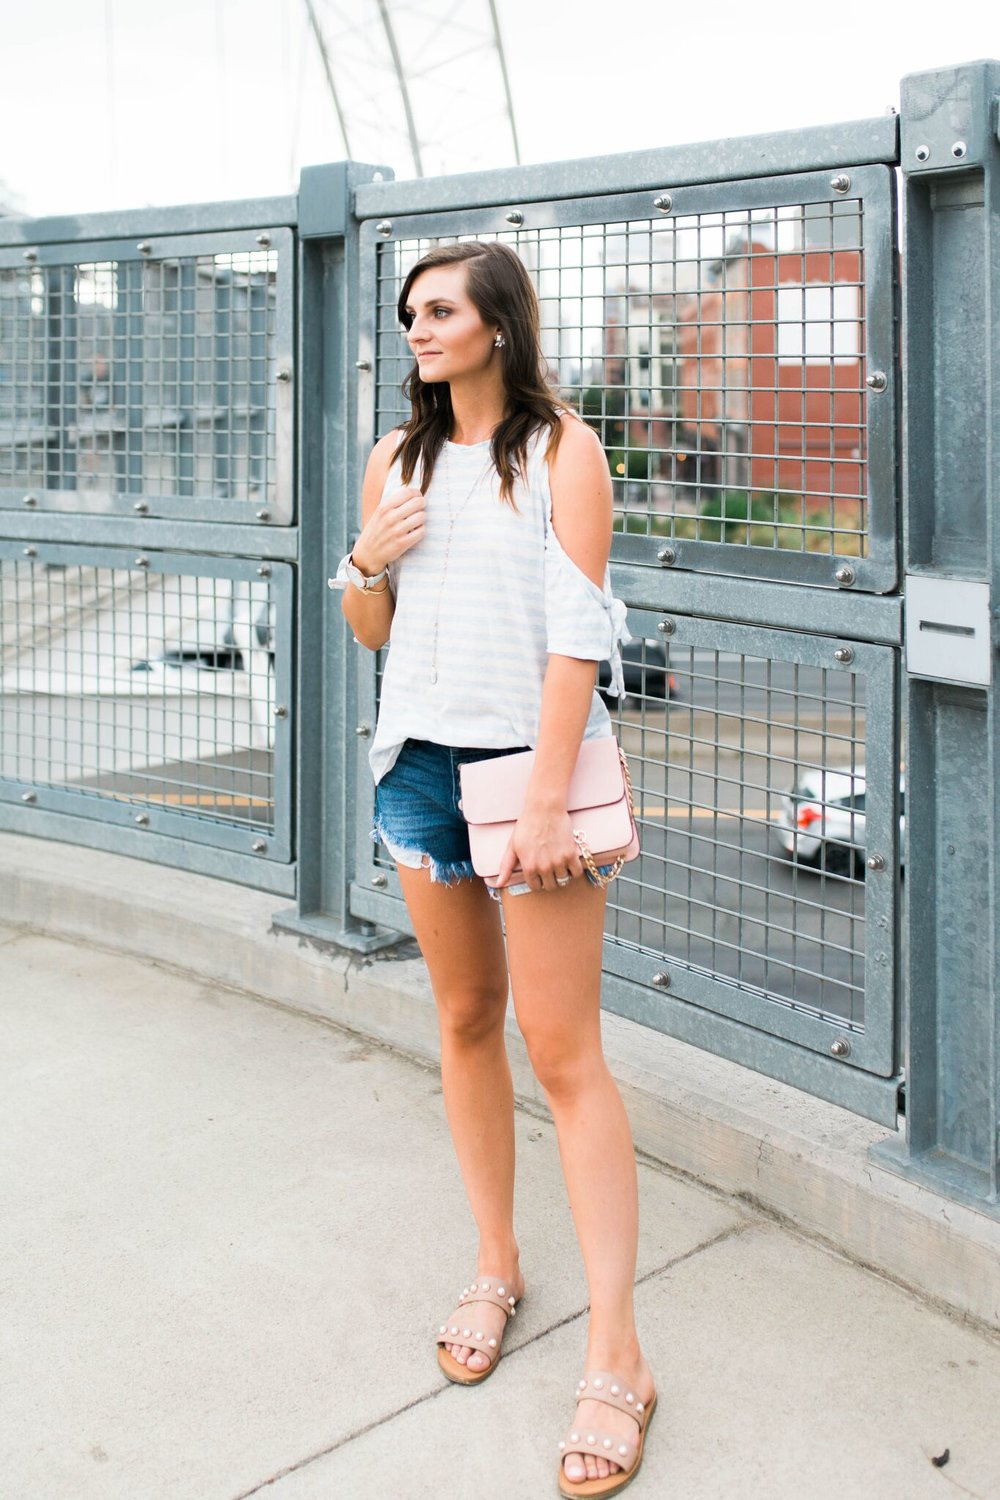 """<img src =""""five-summer-pieces-to-have-in-your-closet.jpg. alt="""" fashion-blogger-styling-summer-pieces-to-have-in-your-closet-denim-cut-off-shorts-cold-shoulder-tee-and-steve-madden-jole-pearl-sandals"""">"""